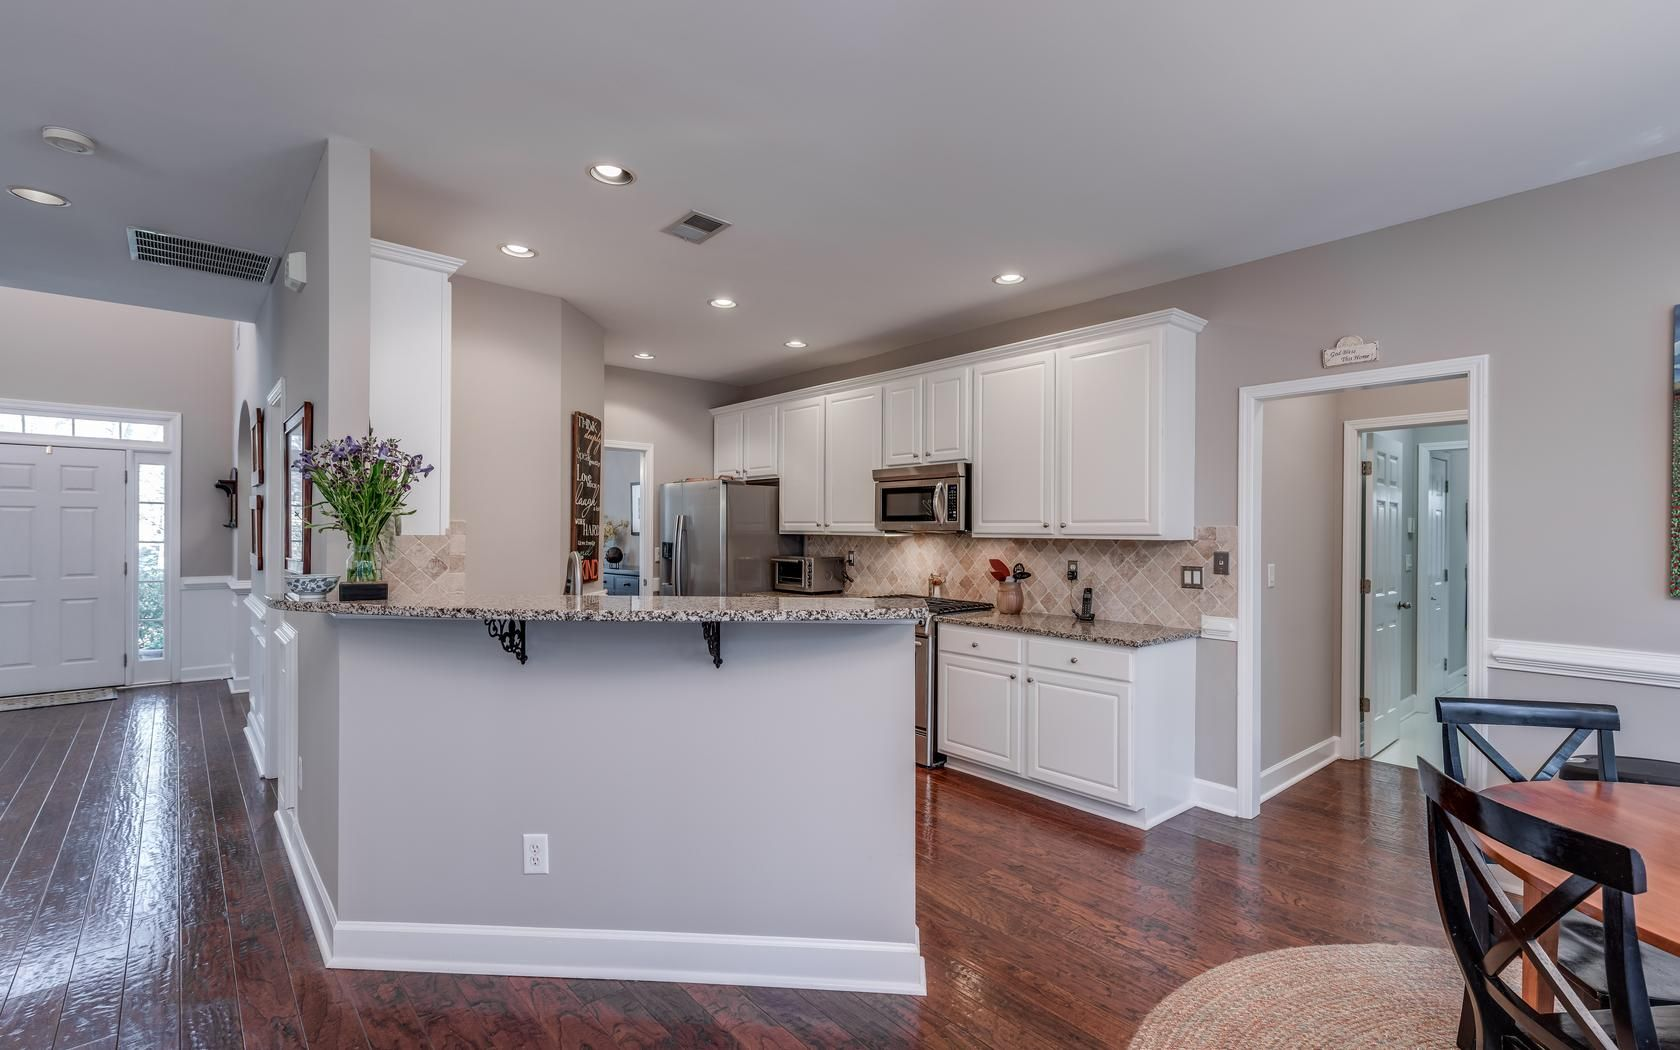 Gorgeous ud hardwood flooring throughout the entire main floor with